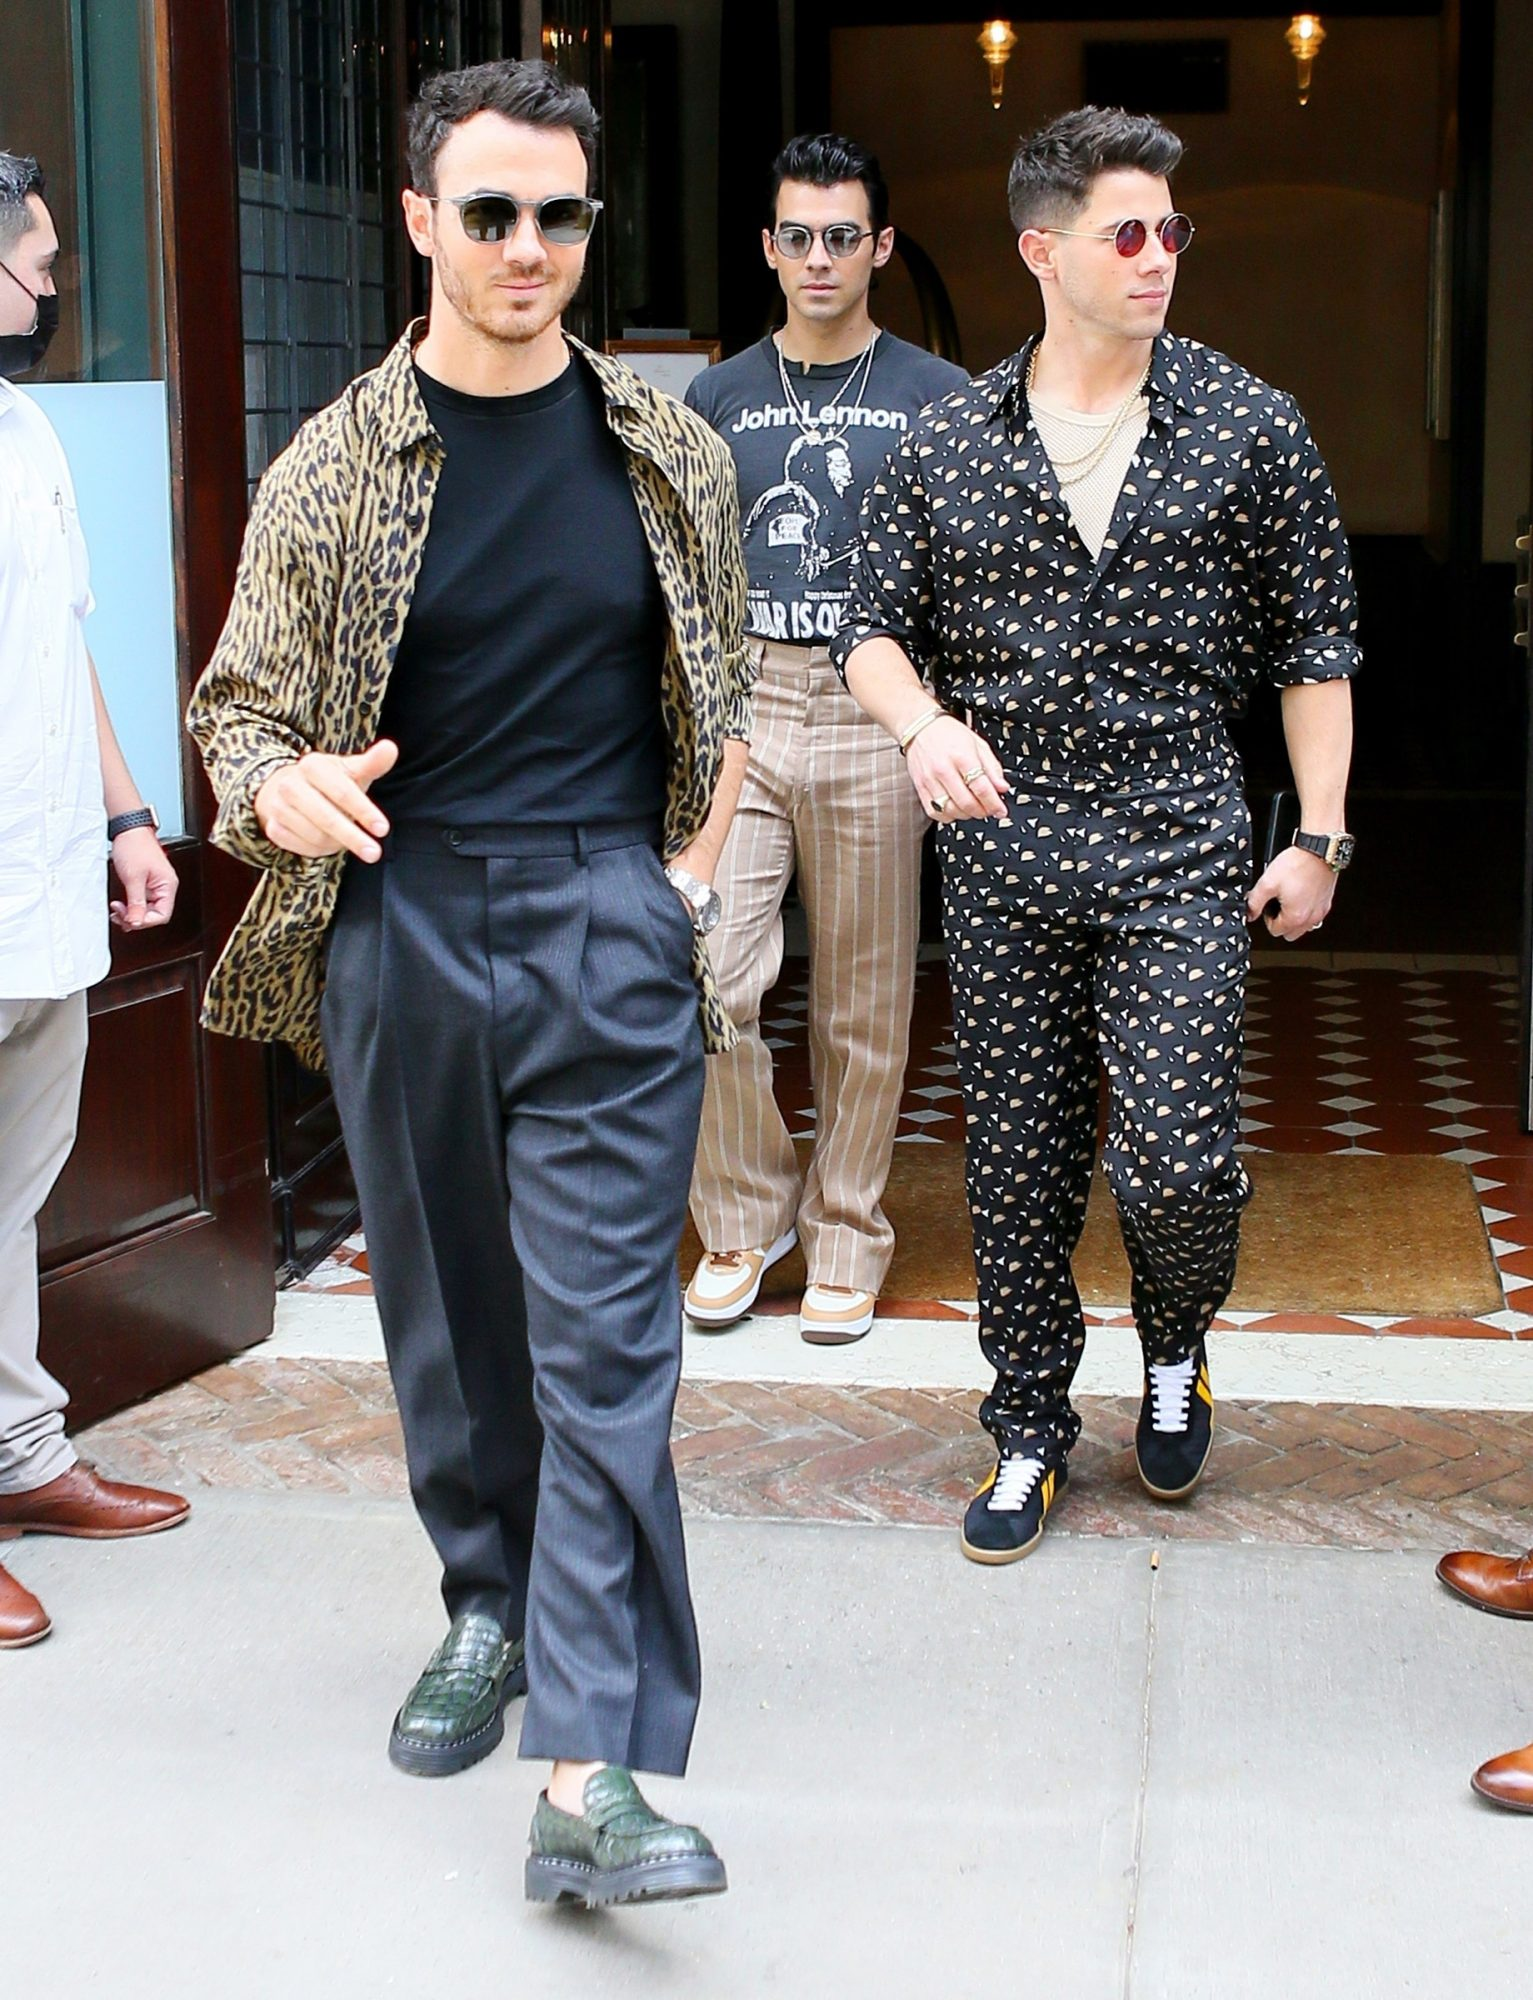 The Jonas Brothers, Nick, Kevin, and Joe Jonas, share their charming smile as they exit the Greenwich Hotel in NYC.